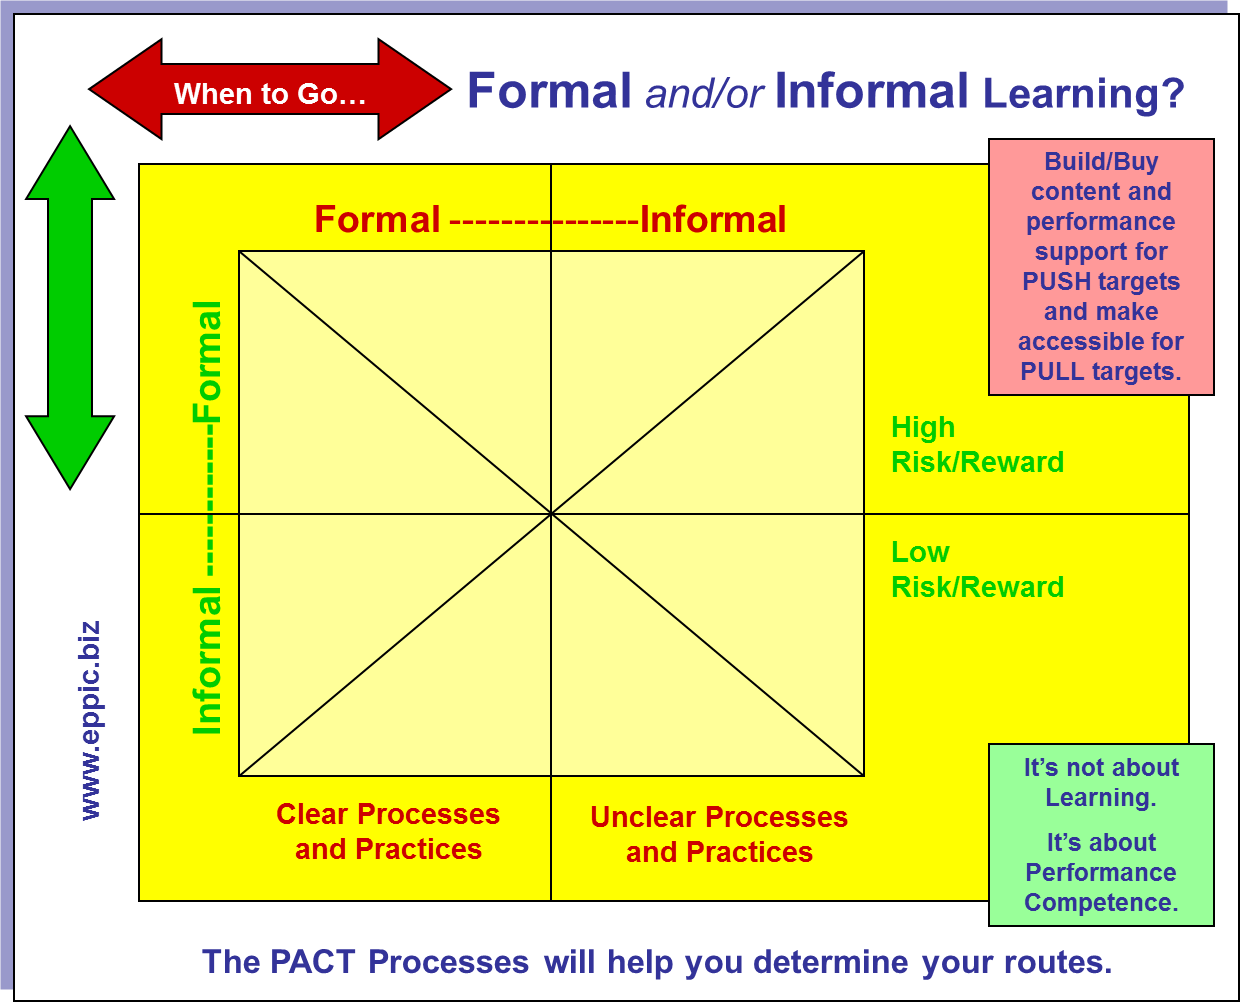 formal learning